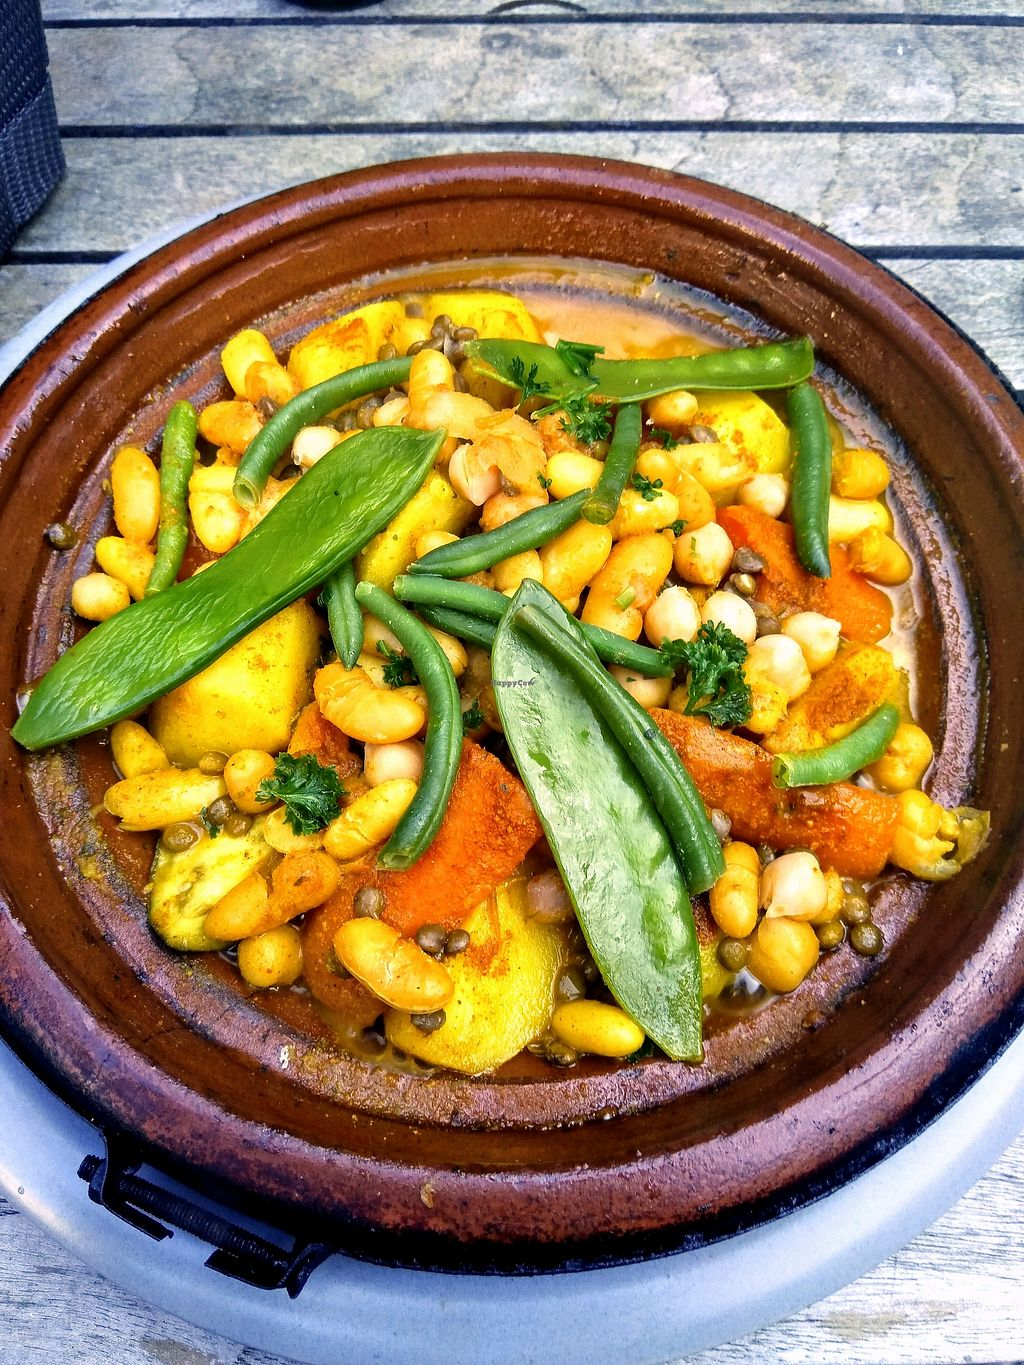 """Photo of Zahia's Cuisine  by <a href=""""/members/profile/Zjef"""">Zjef</a> <br/>vegetable tajine <br/> April 19, 2018  - <a href='/contact/abuse/image/103628/388220'>Report</a>"""